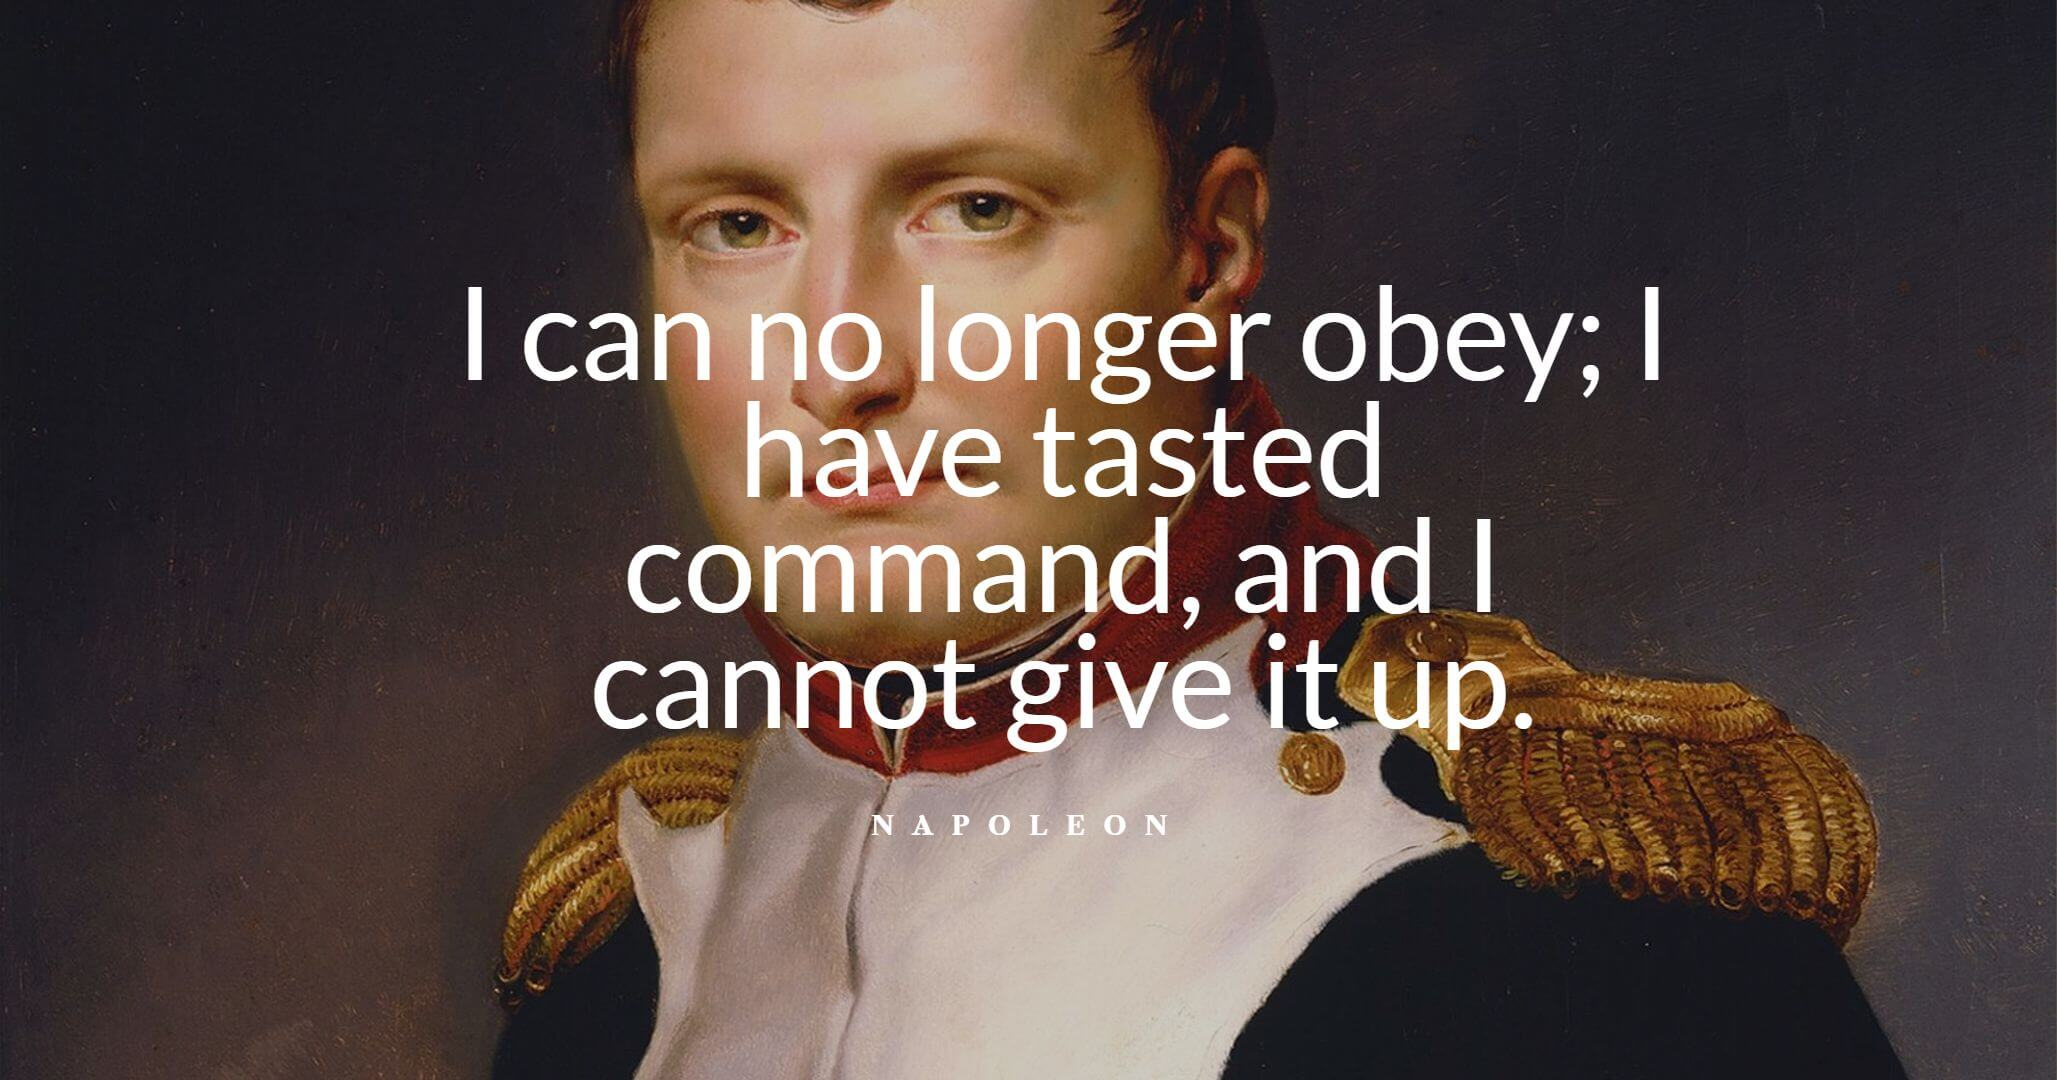 Napoleon Bonaparte quotes: I can no longer obey; I have tasted command, and I cannot give it up